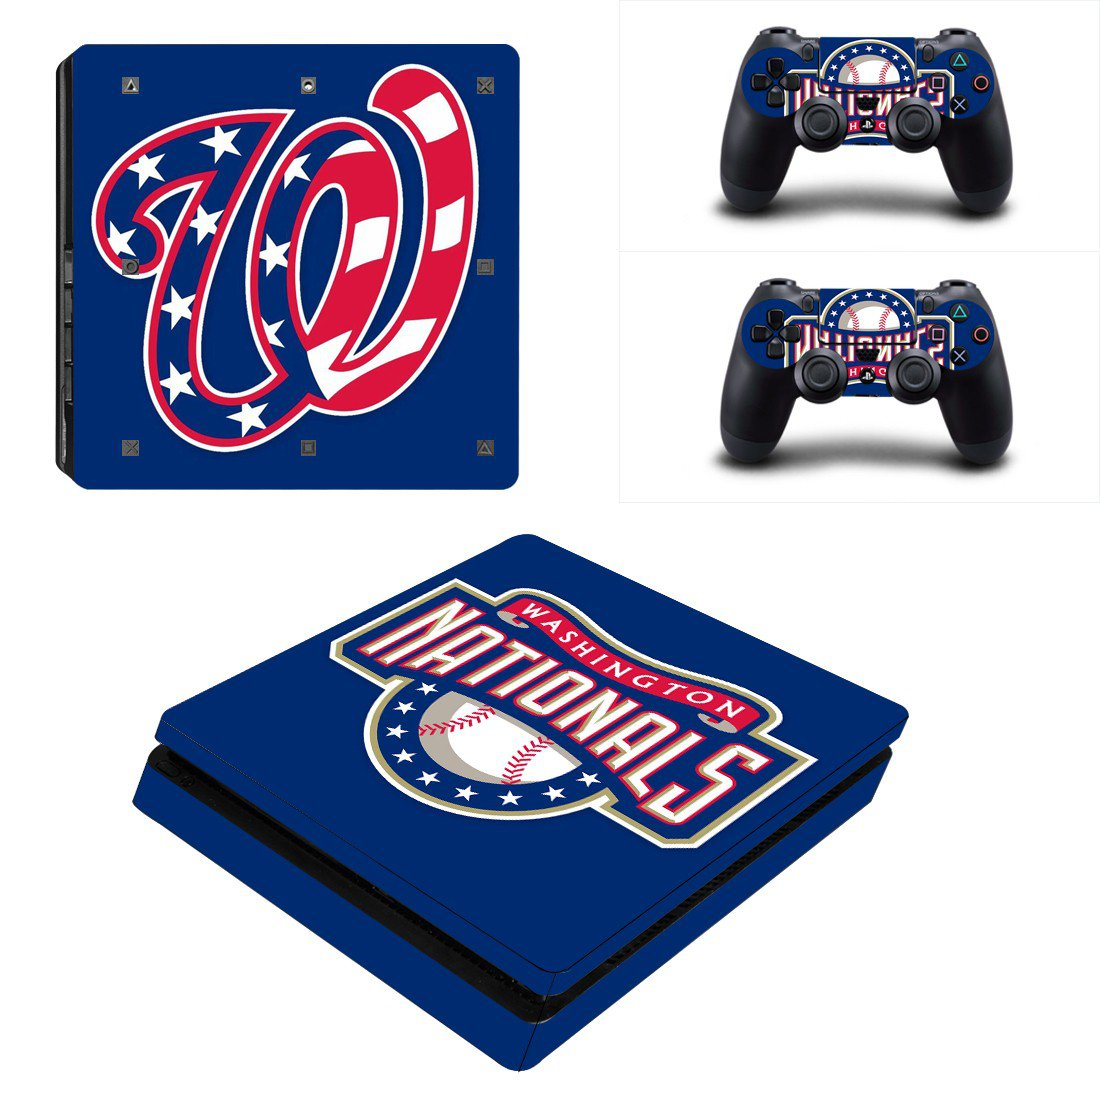 Washington Nationals Play Station 4 slim skin decal for console and 2 controllers